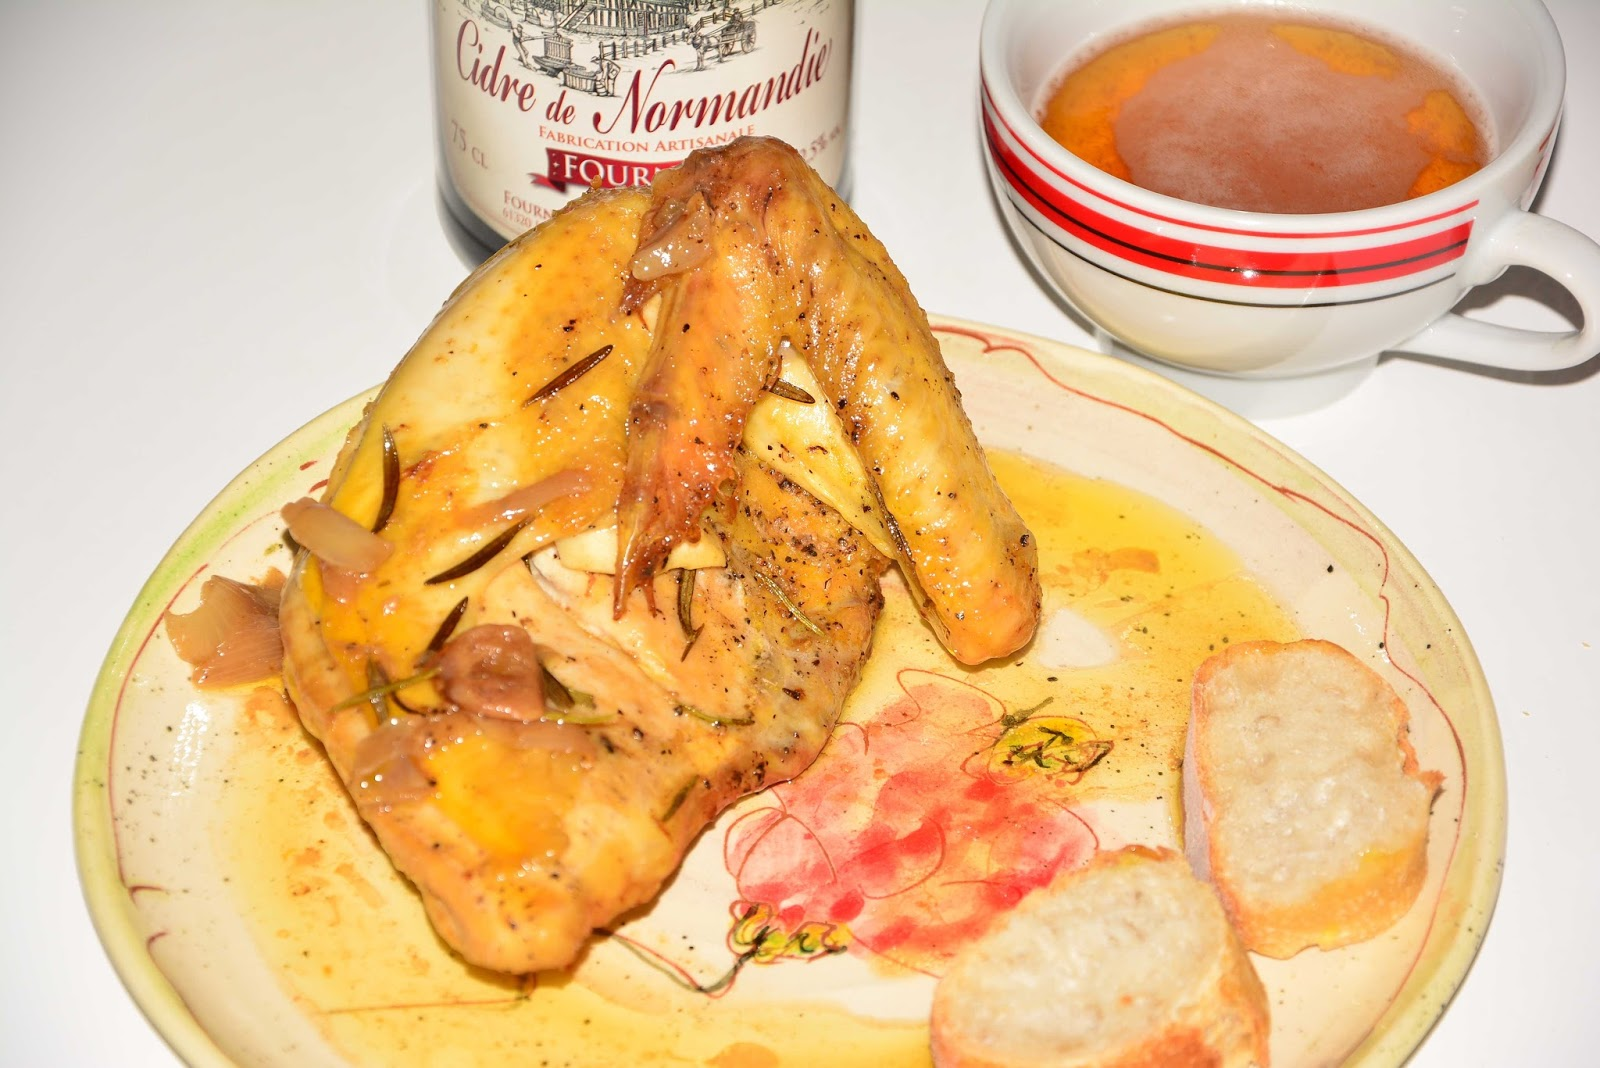 Roasted chicken with cider